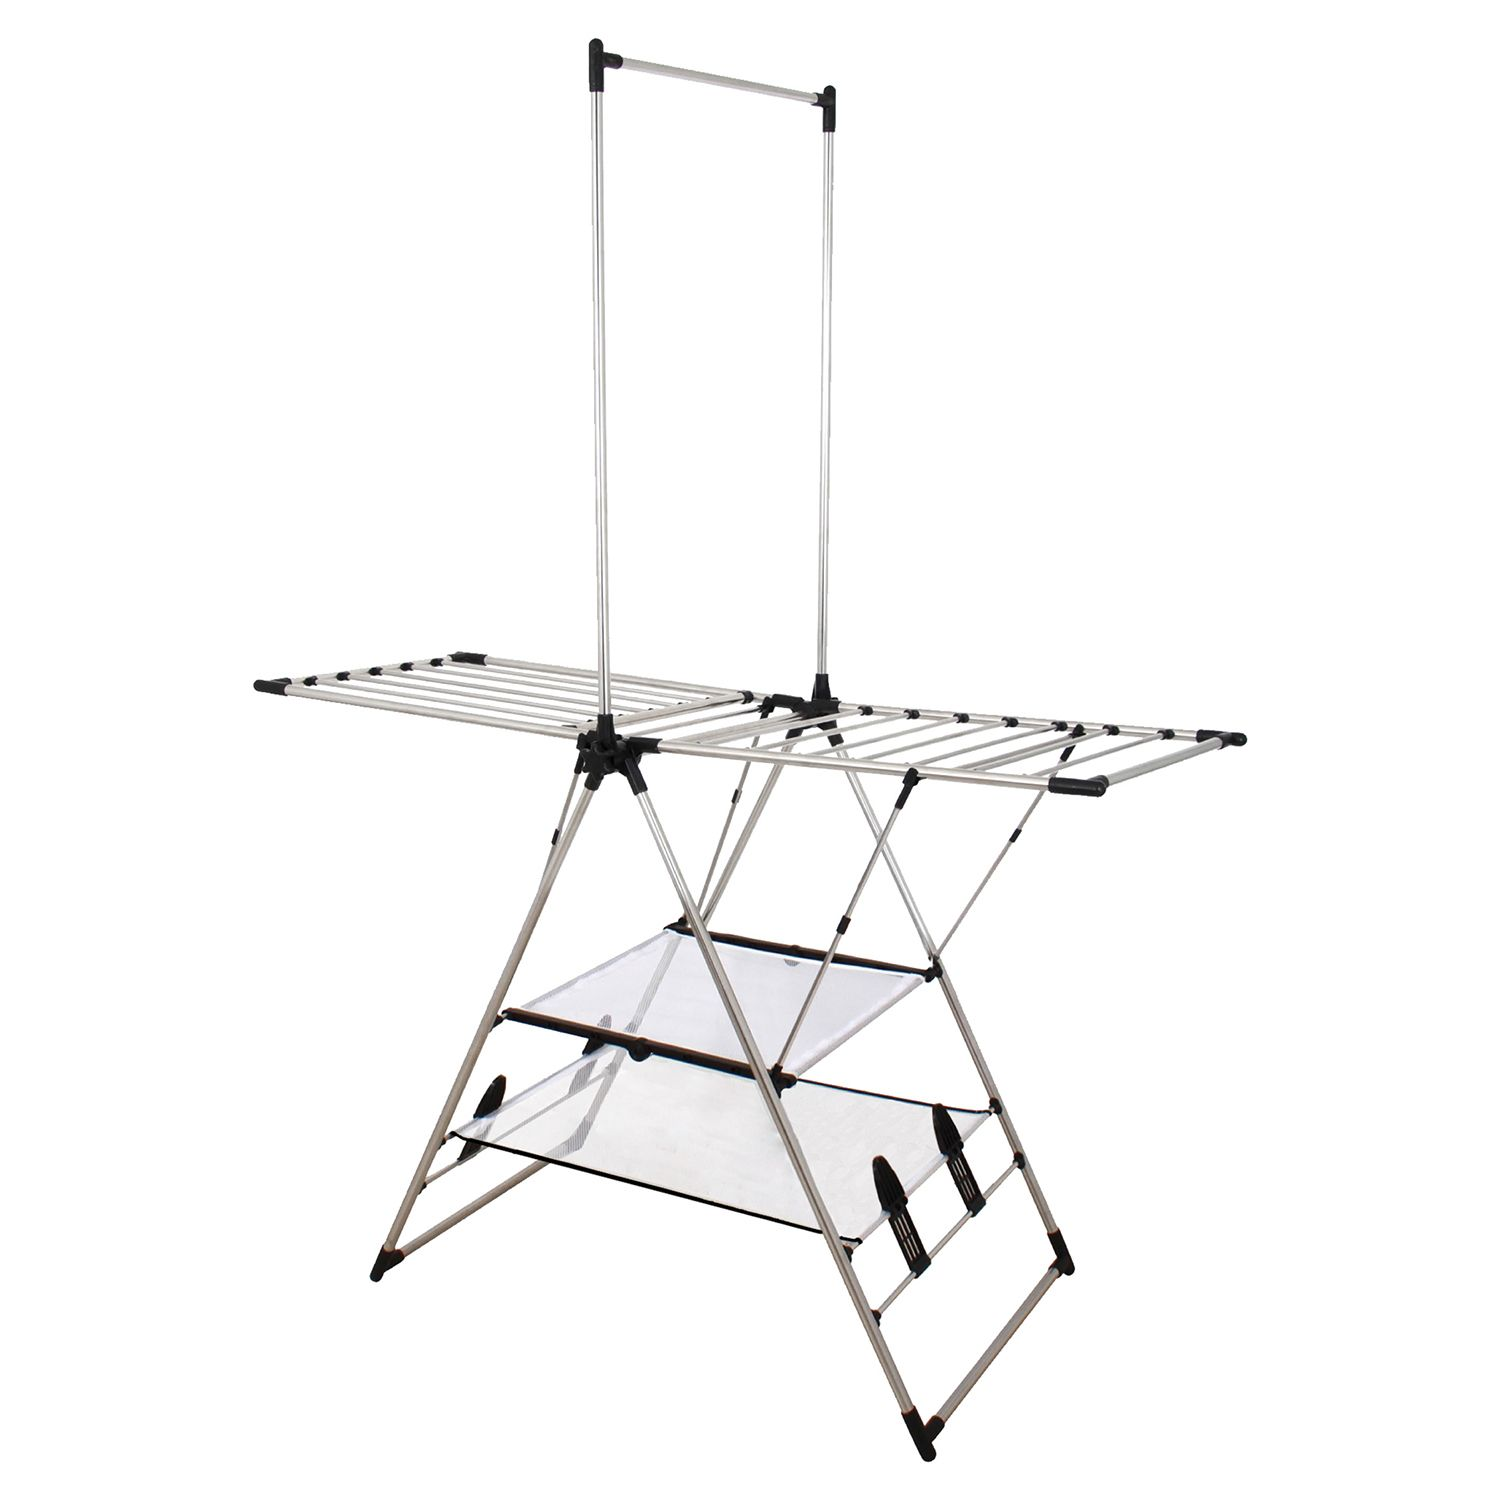 Psa Costco Has A Clothes Drying Rack That Might Be Really Useful